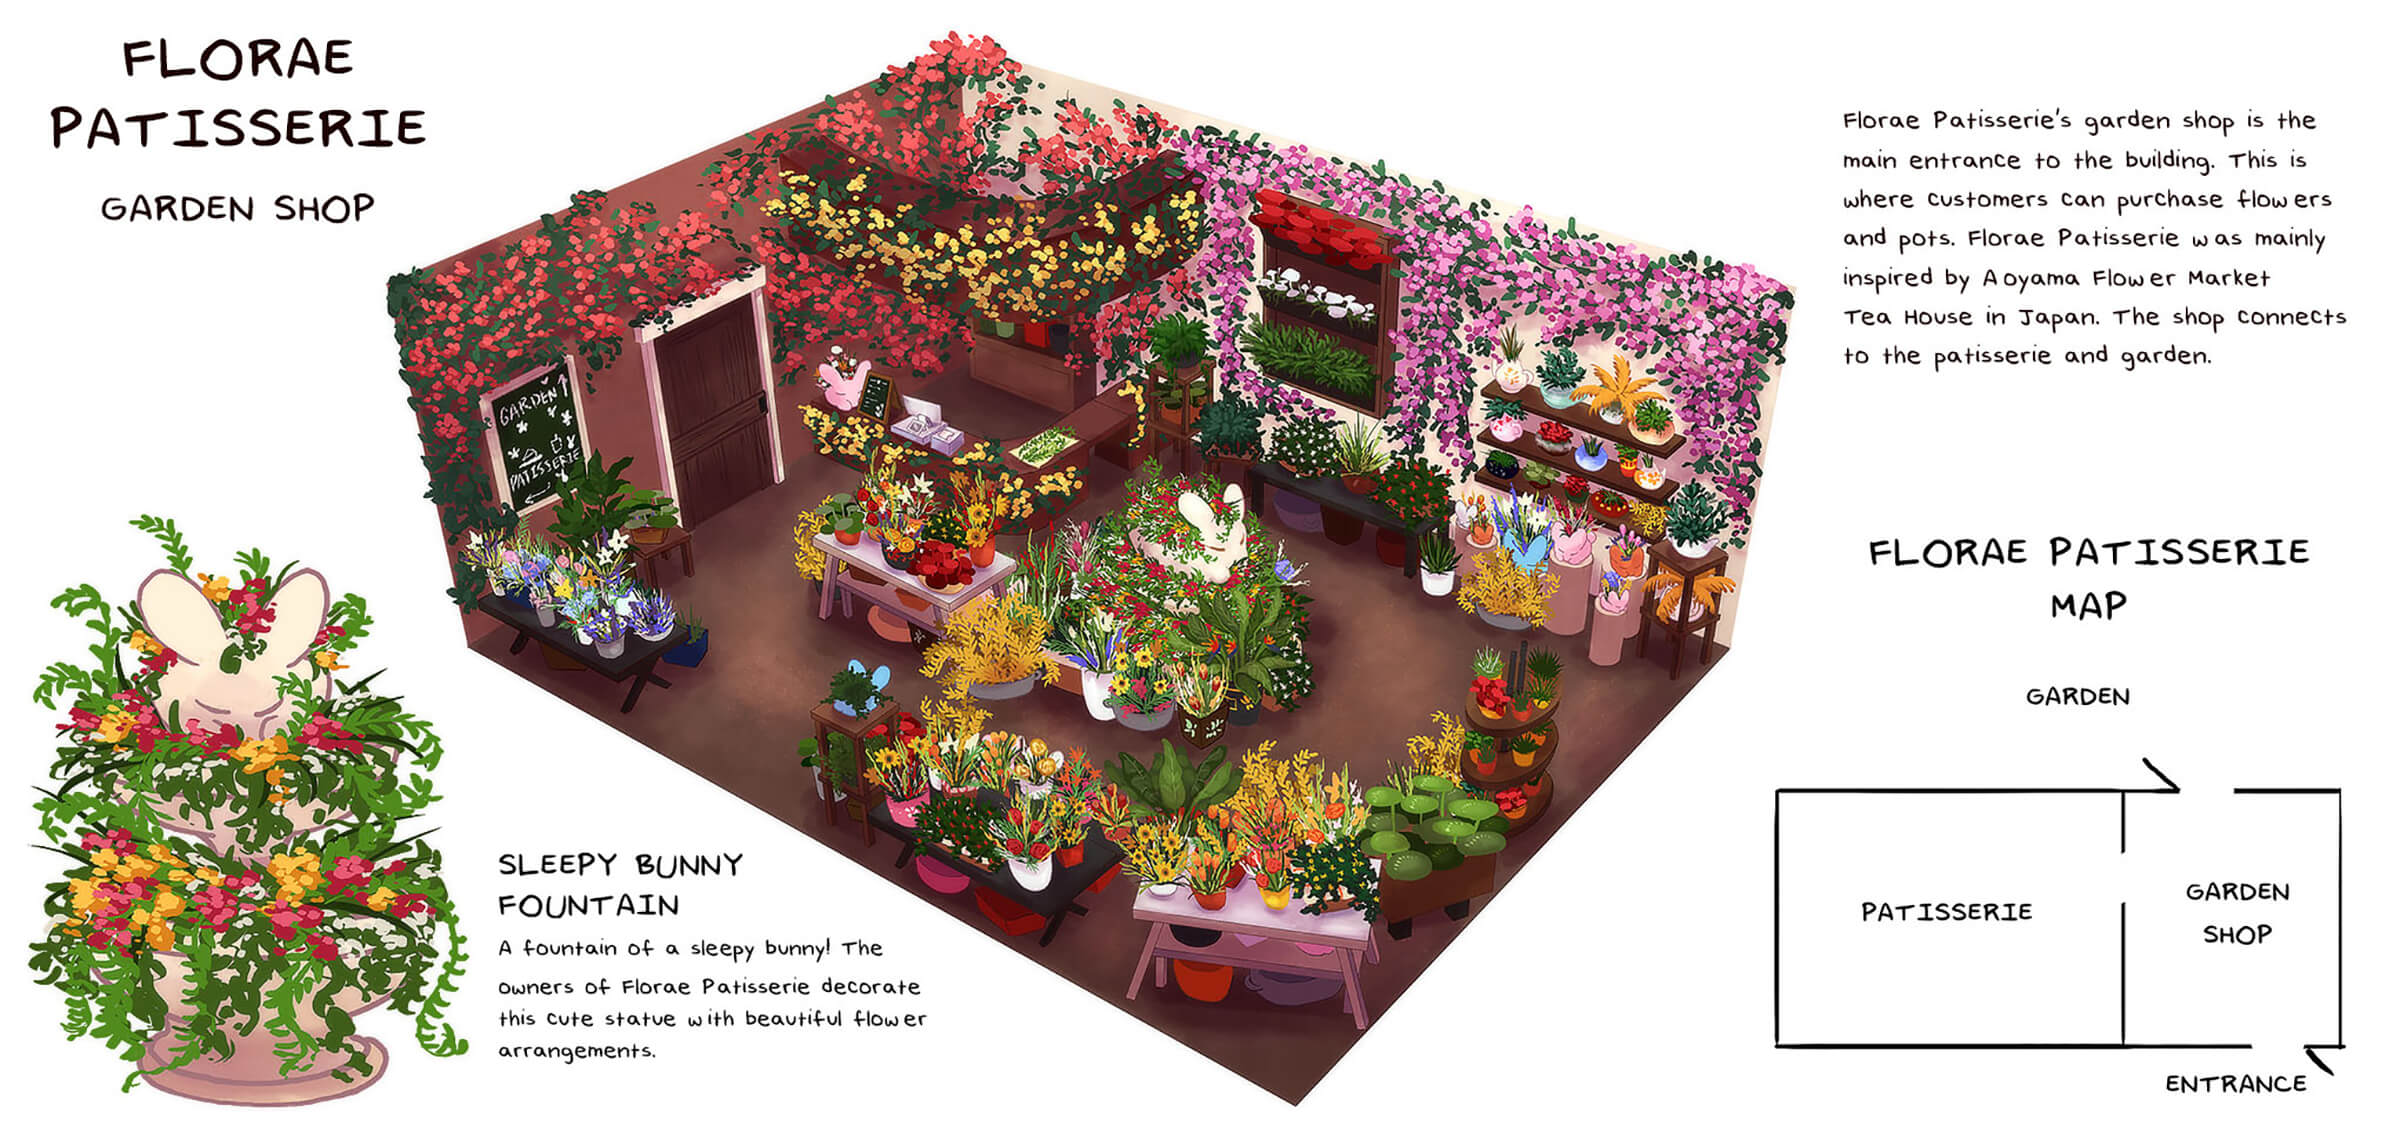 A cut-away view of a garden shop filled with flowers